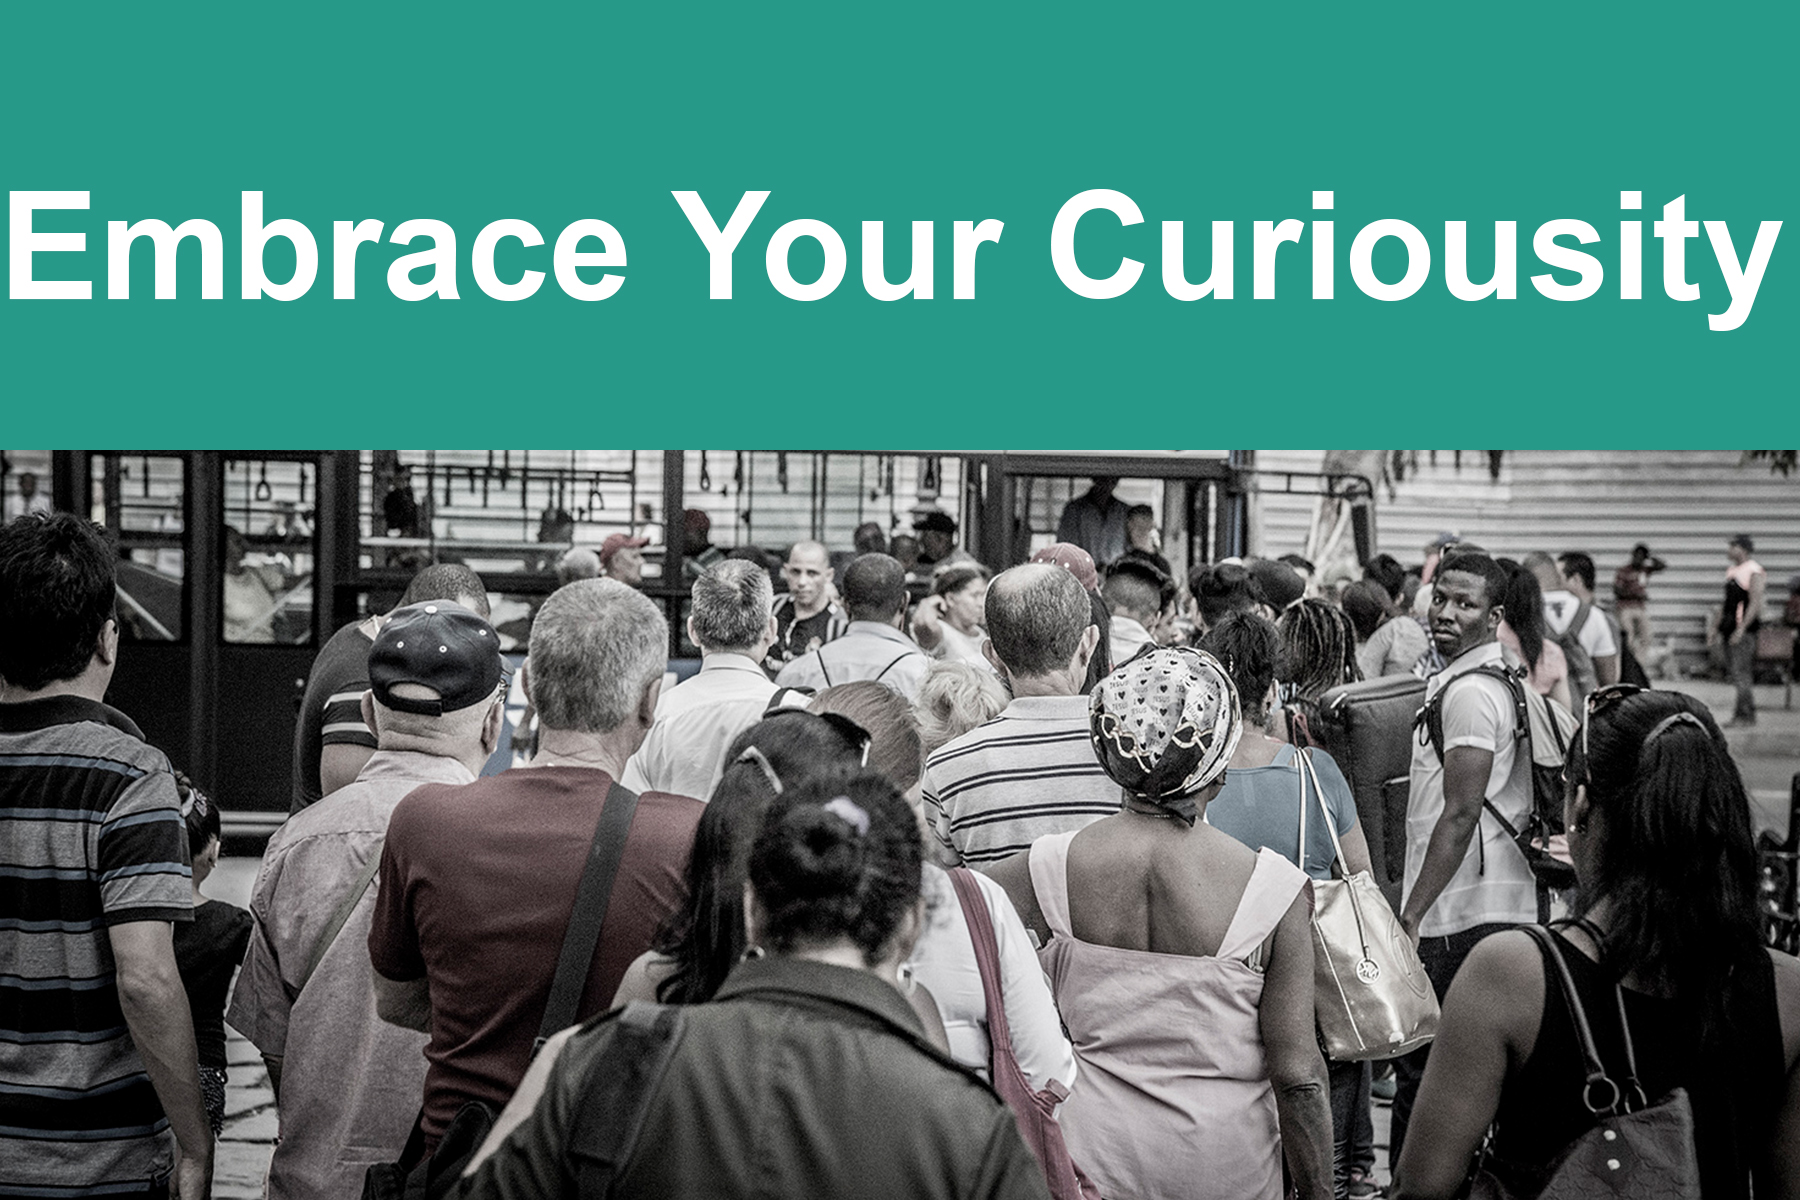 Embrace Your Curiosity